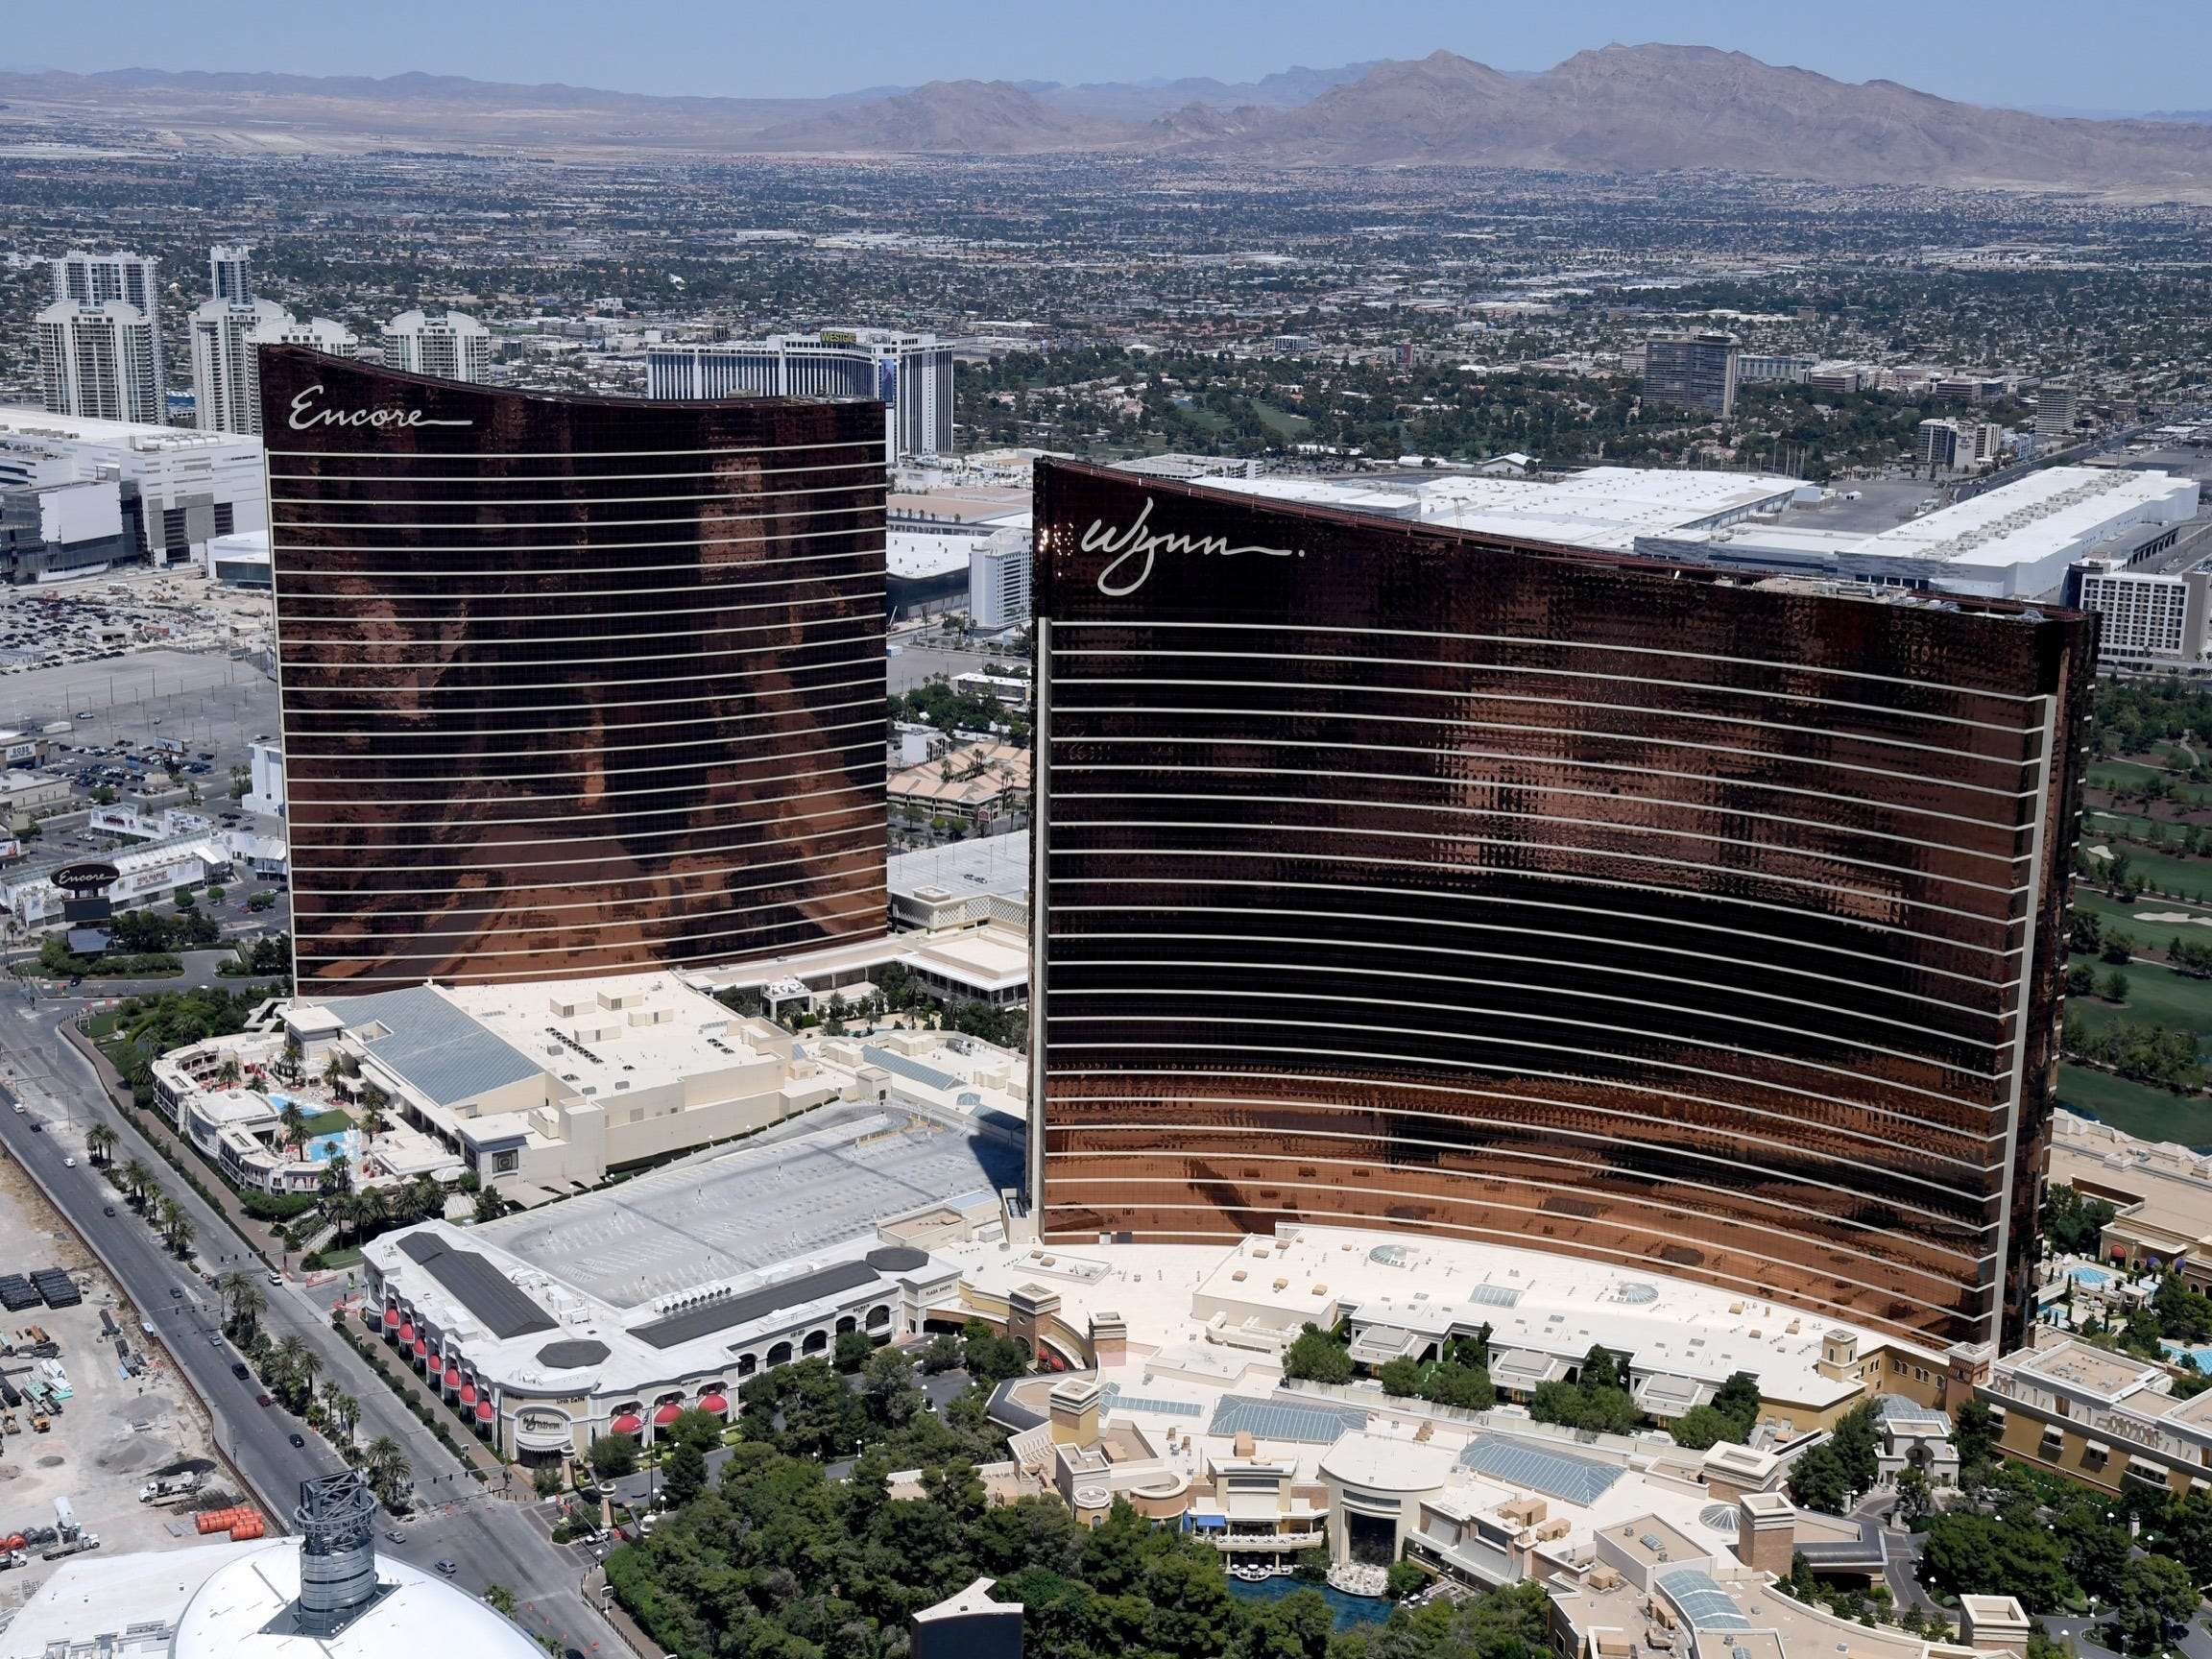 Resorts Reopening What You Can Expect At The 5 Star Wynn Las Vegas